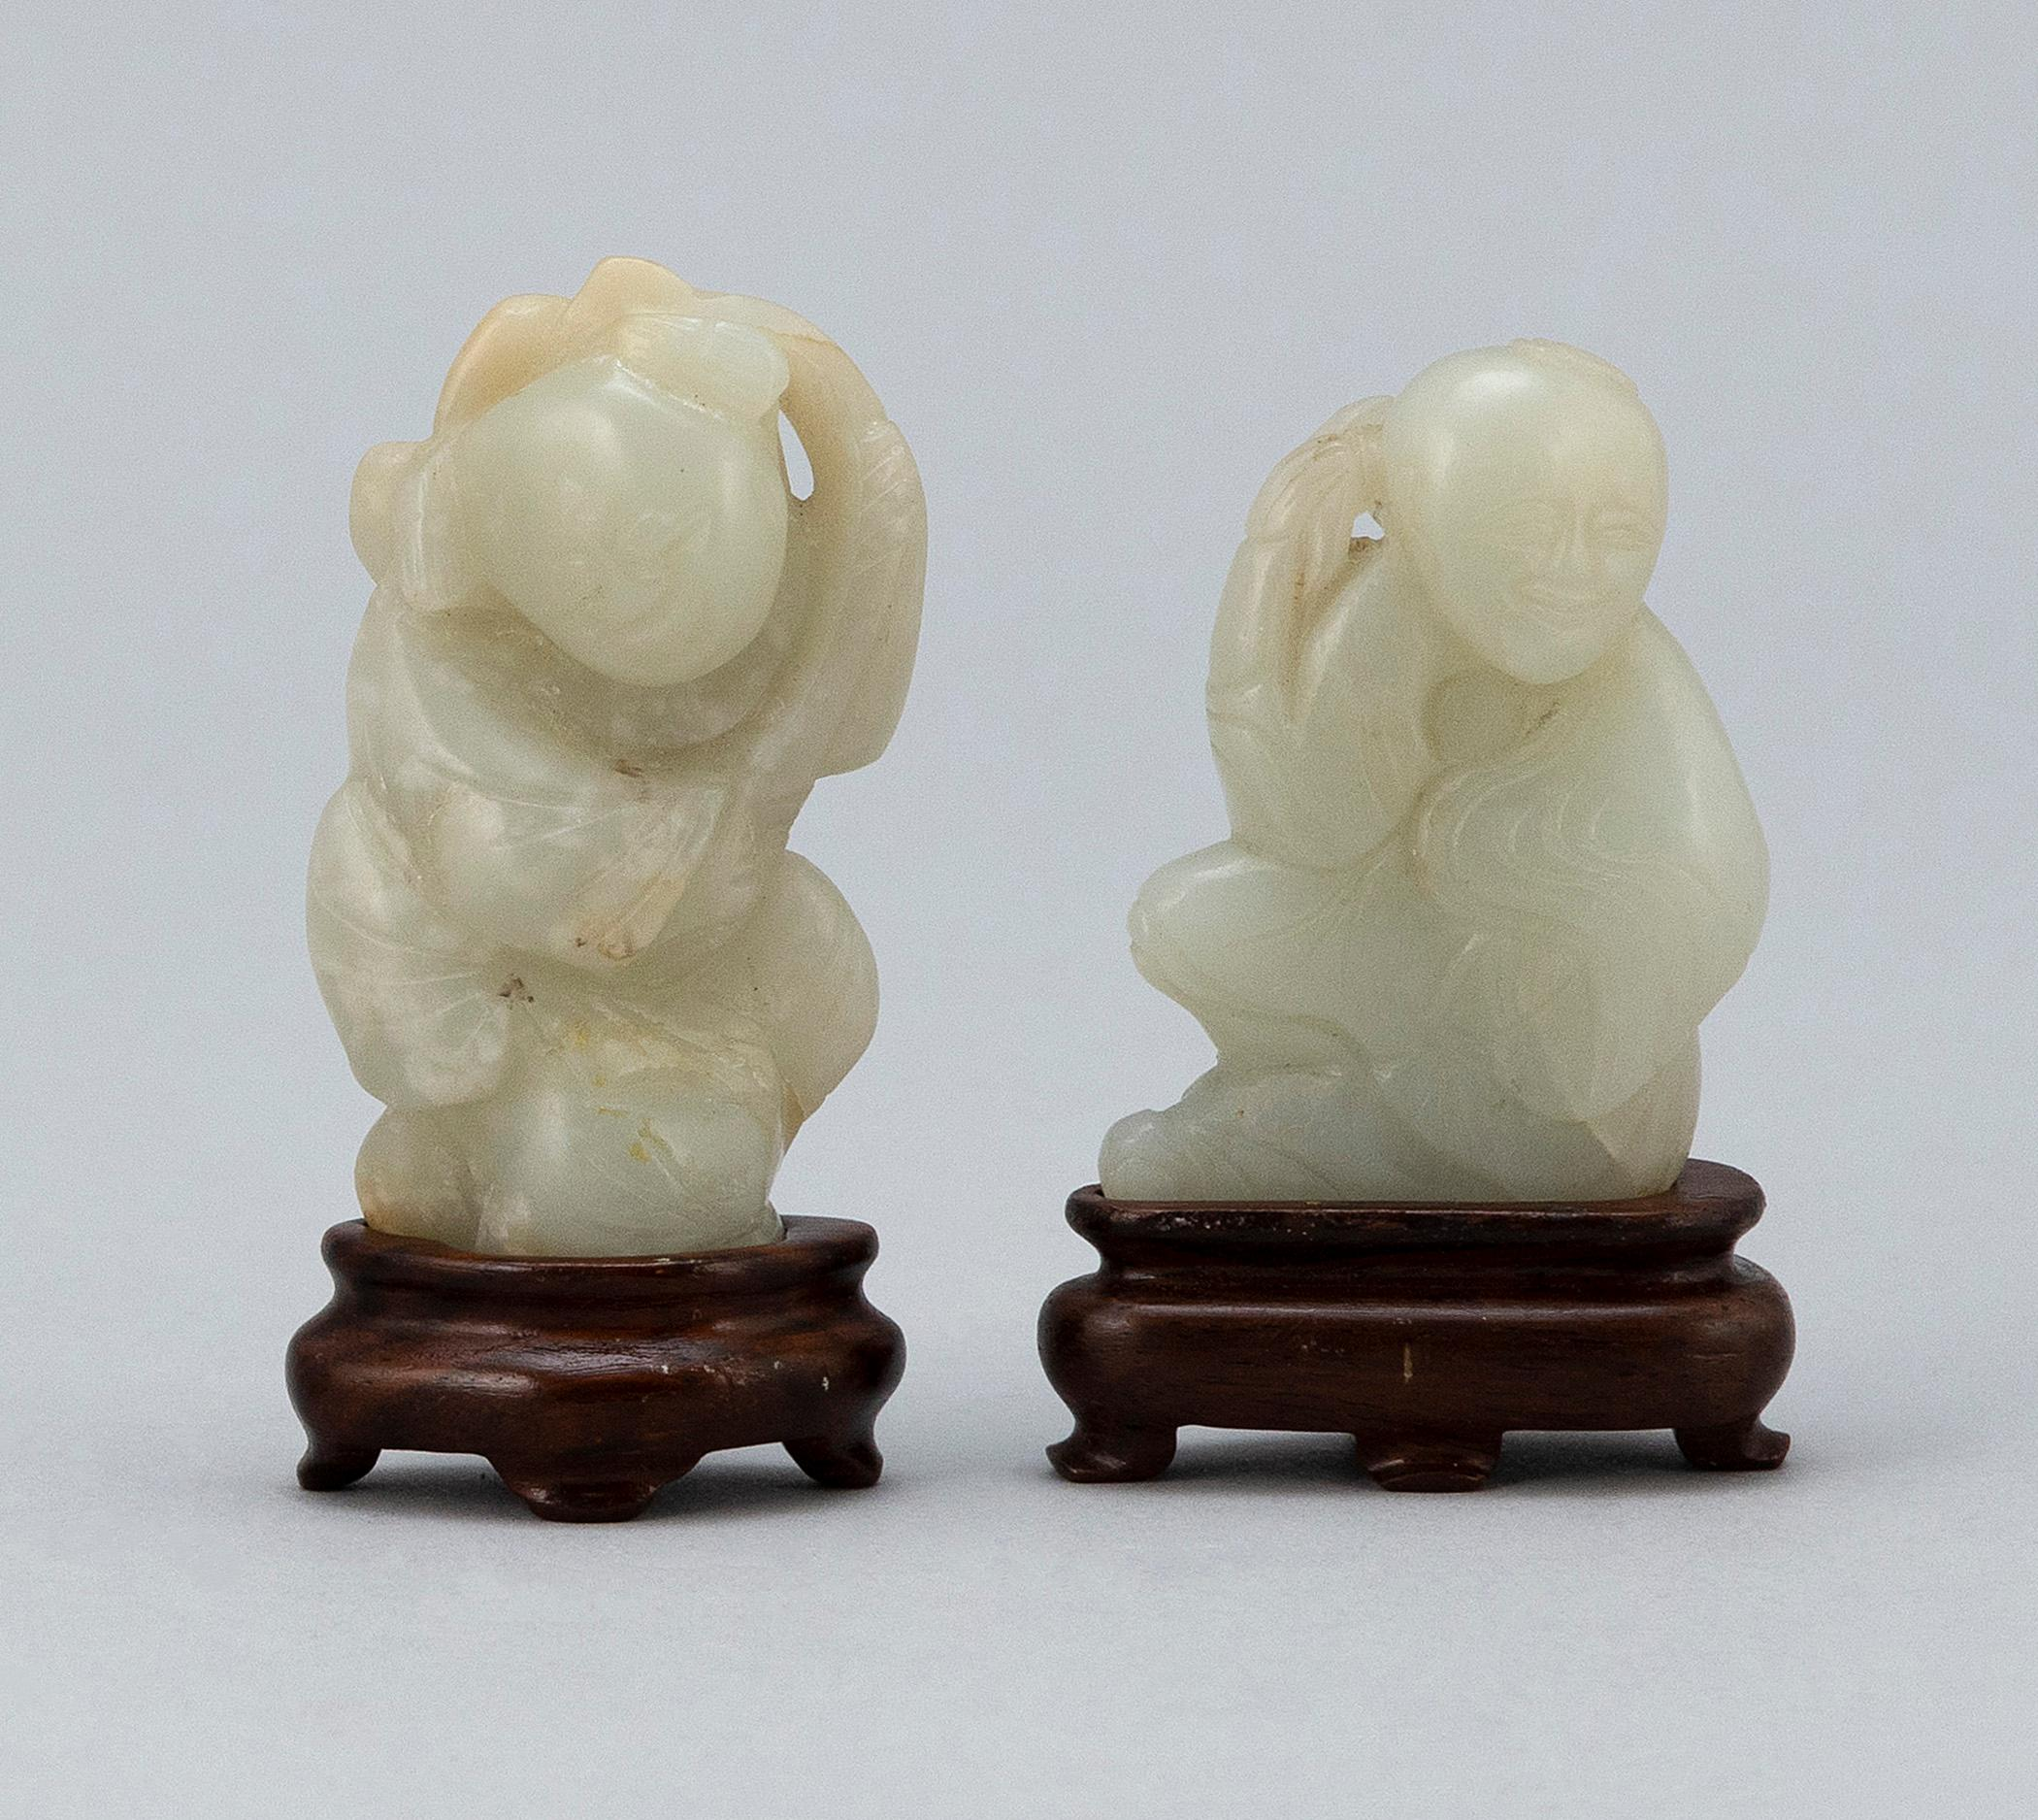 "TWO CHINESE WHITE JADE CARVED FIGURES A farmer and a scholar, heights 2.5"" and 2"". Mounted on wood stands. Purchased at Gump's, San..."